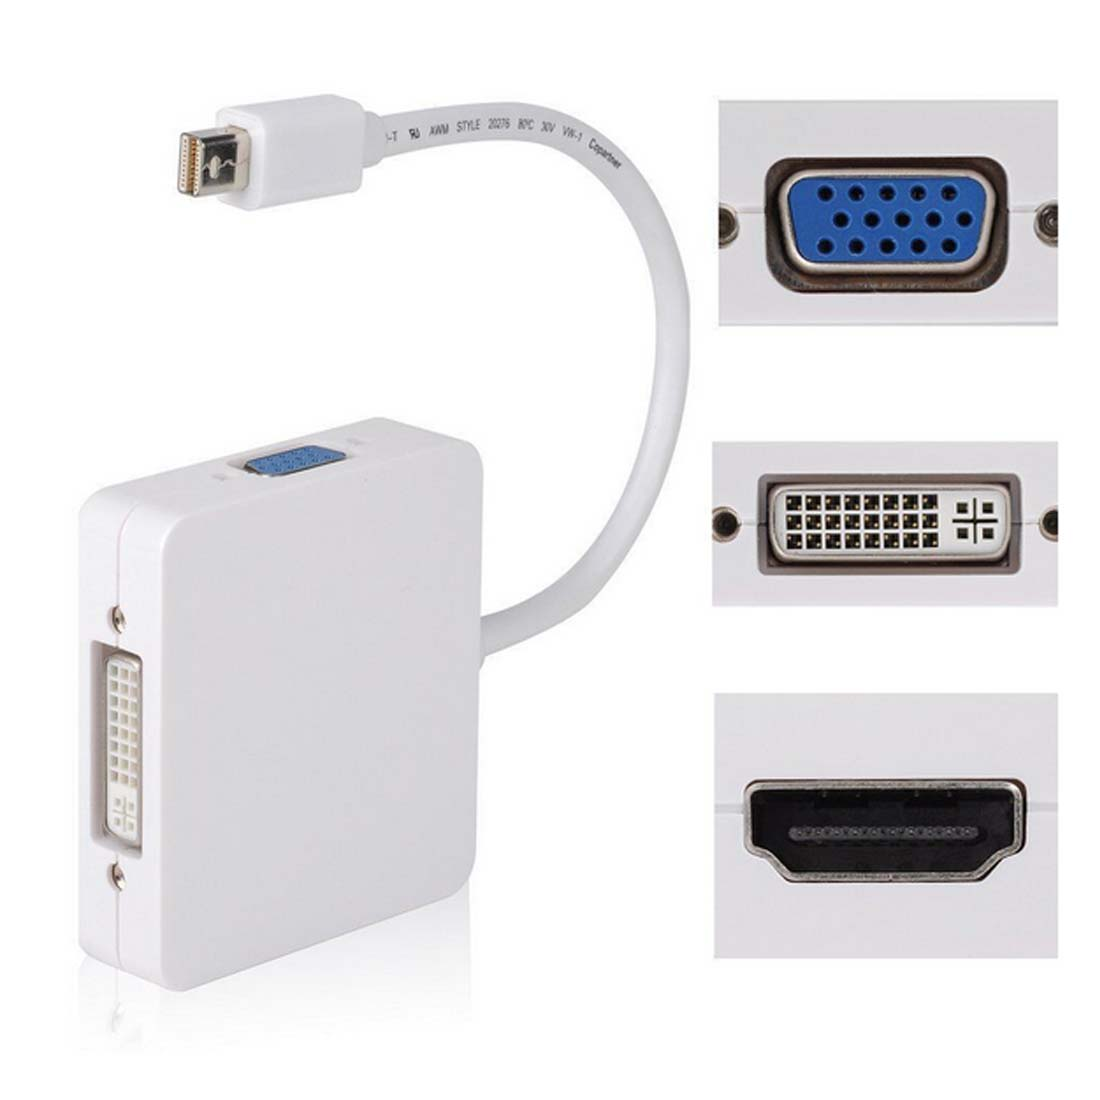 3 in1 Thunder bolt Mini Displayport DP to HDMI DVI VGA Adapter Display Port Cable for Apple Mac Book Pro Mac Book Air 3 in 1 mini dp displayport to hdmi dvi vga display port cable adapter for apple macbook pro